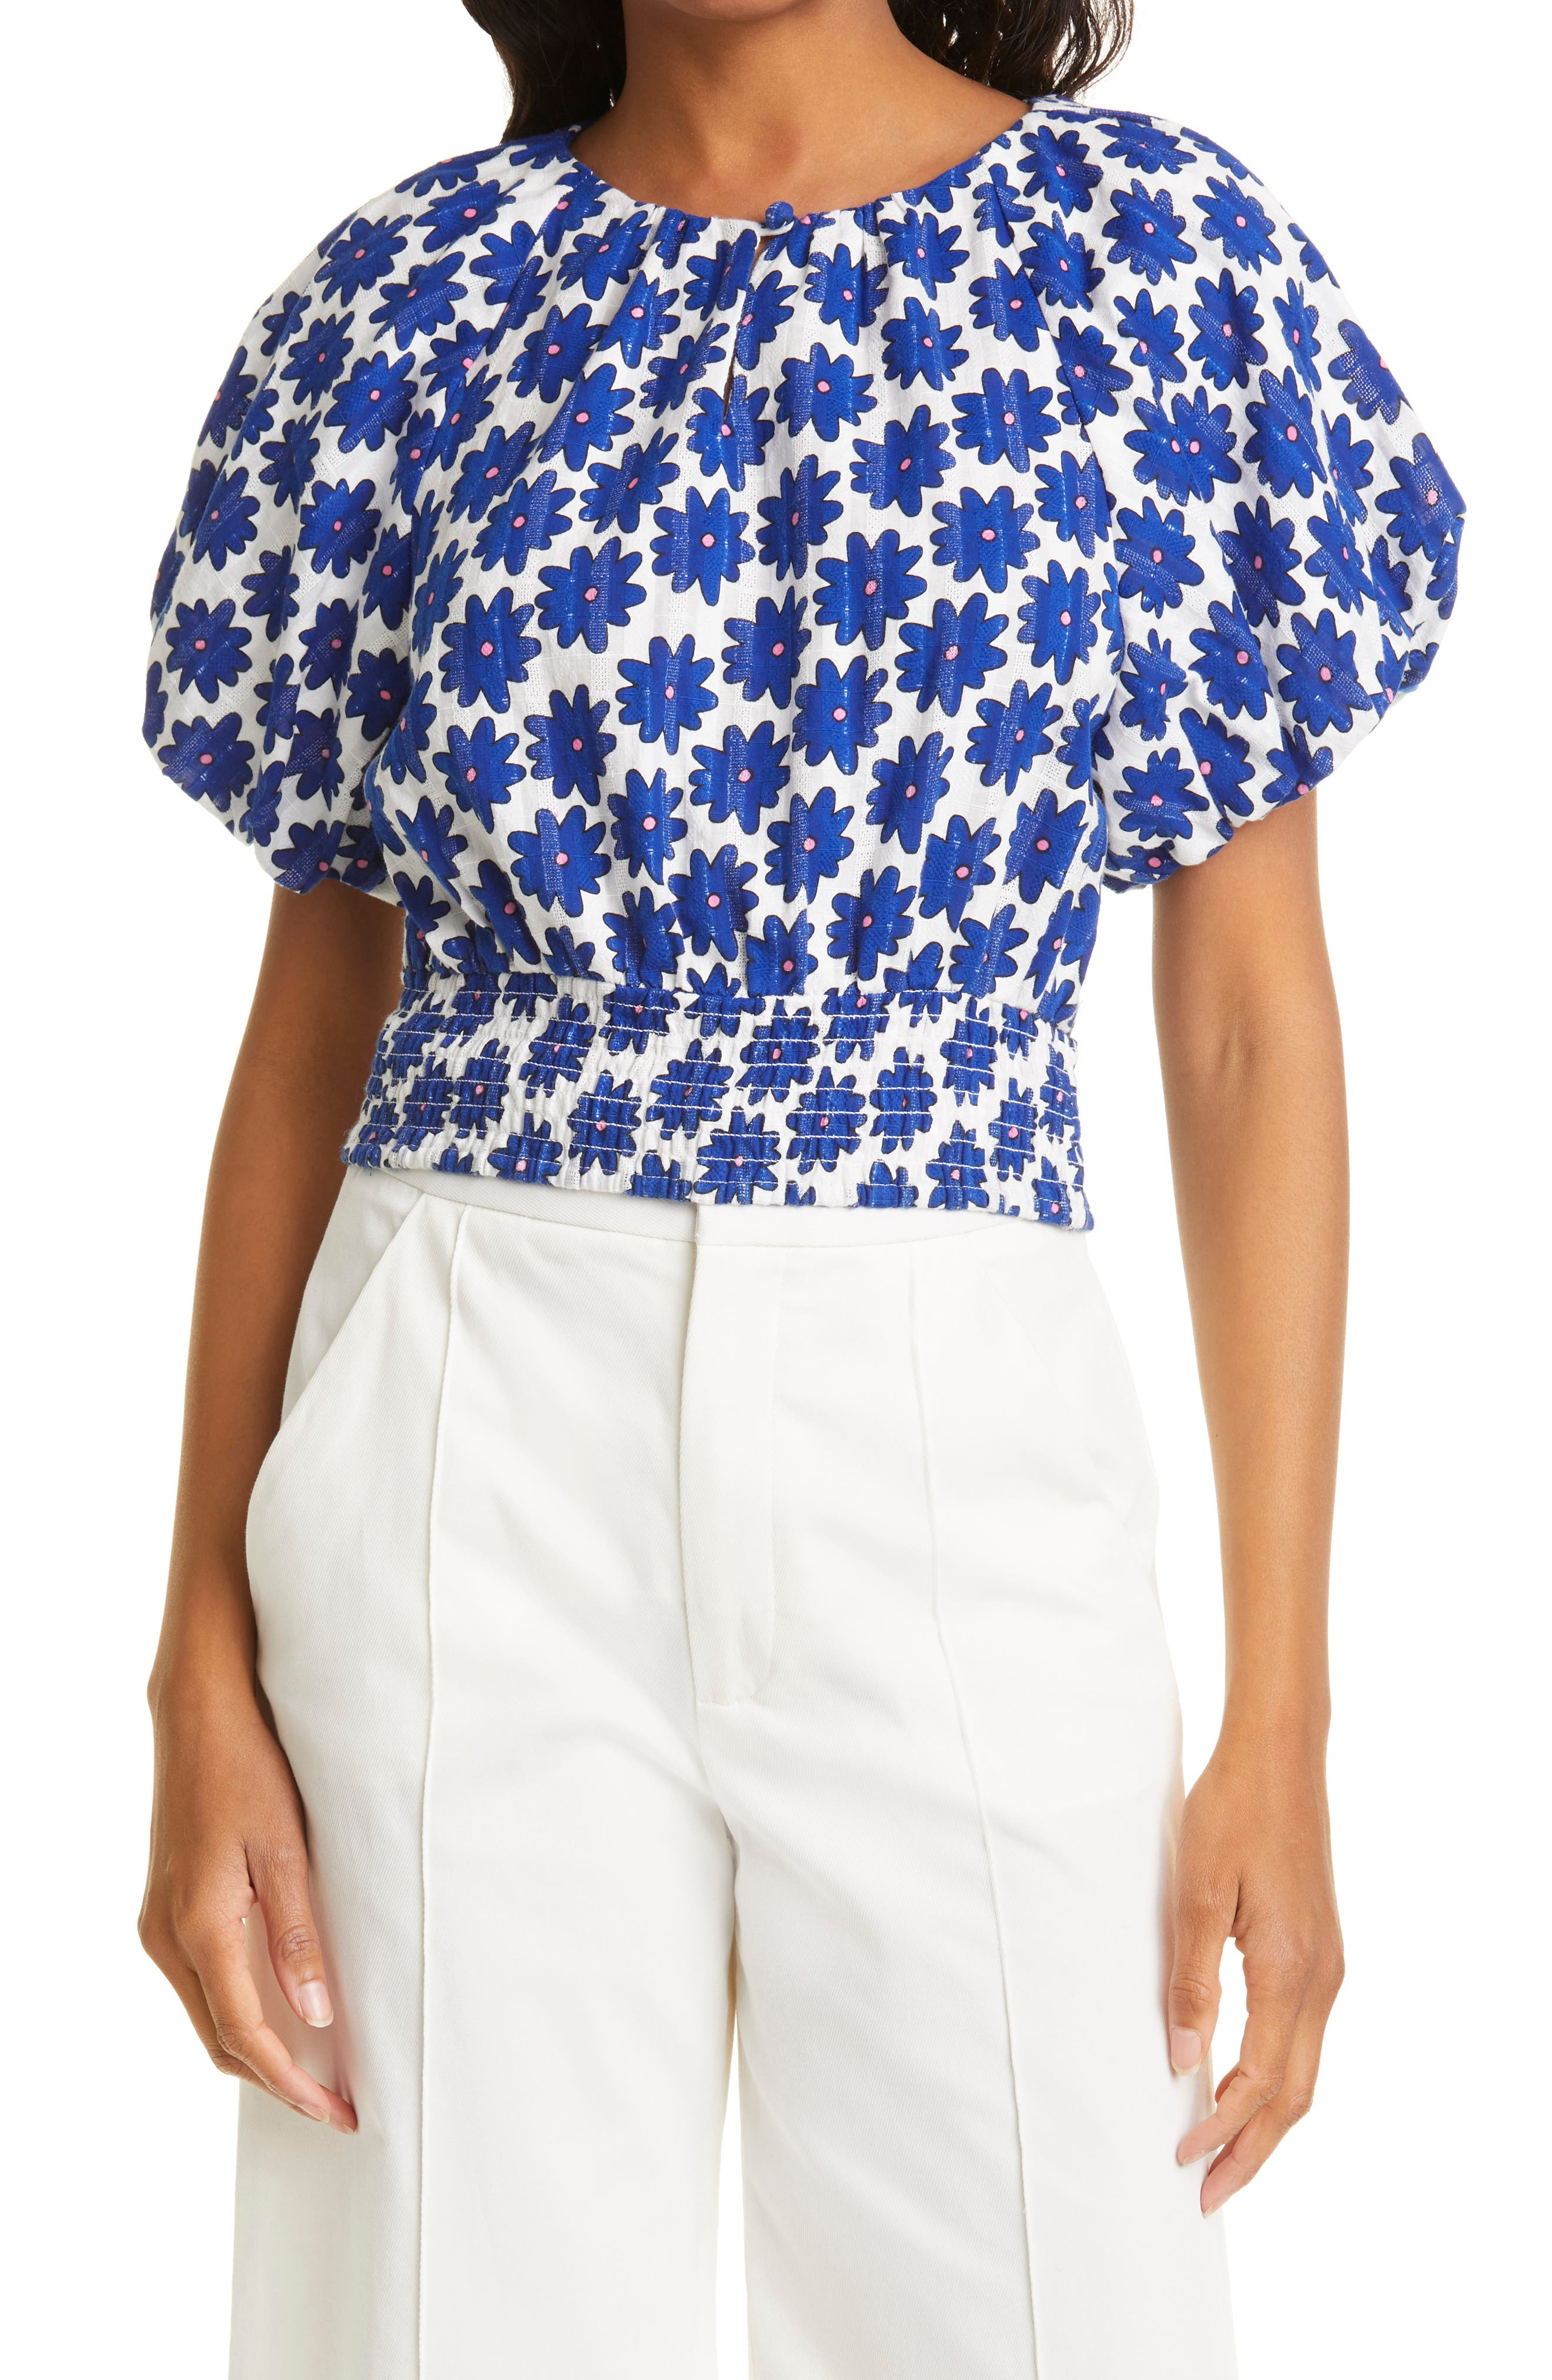 Lucy Floral Print Top